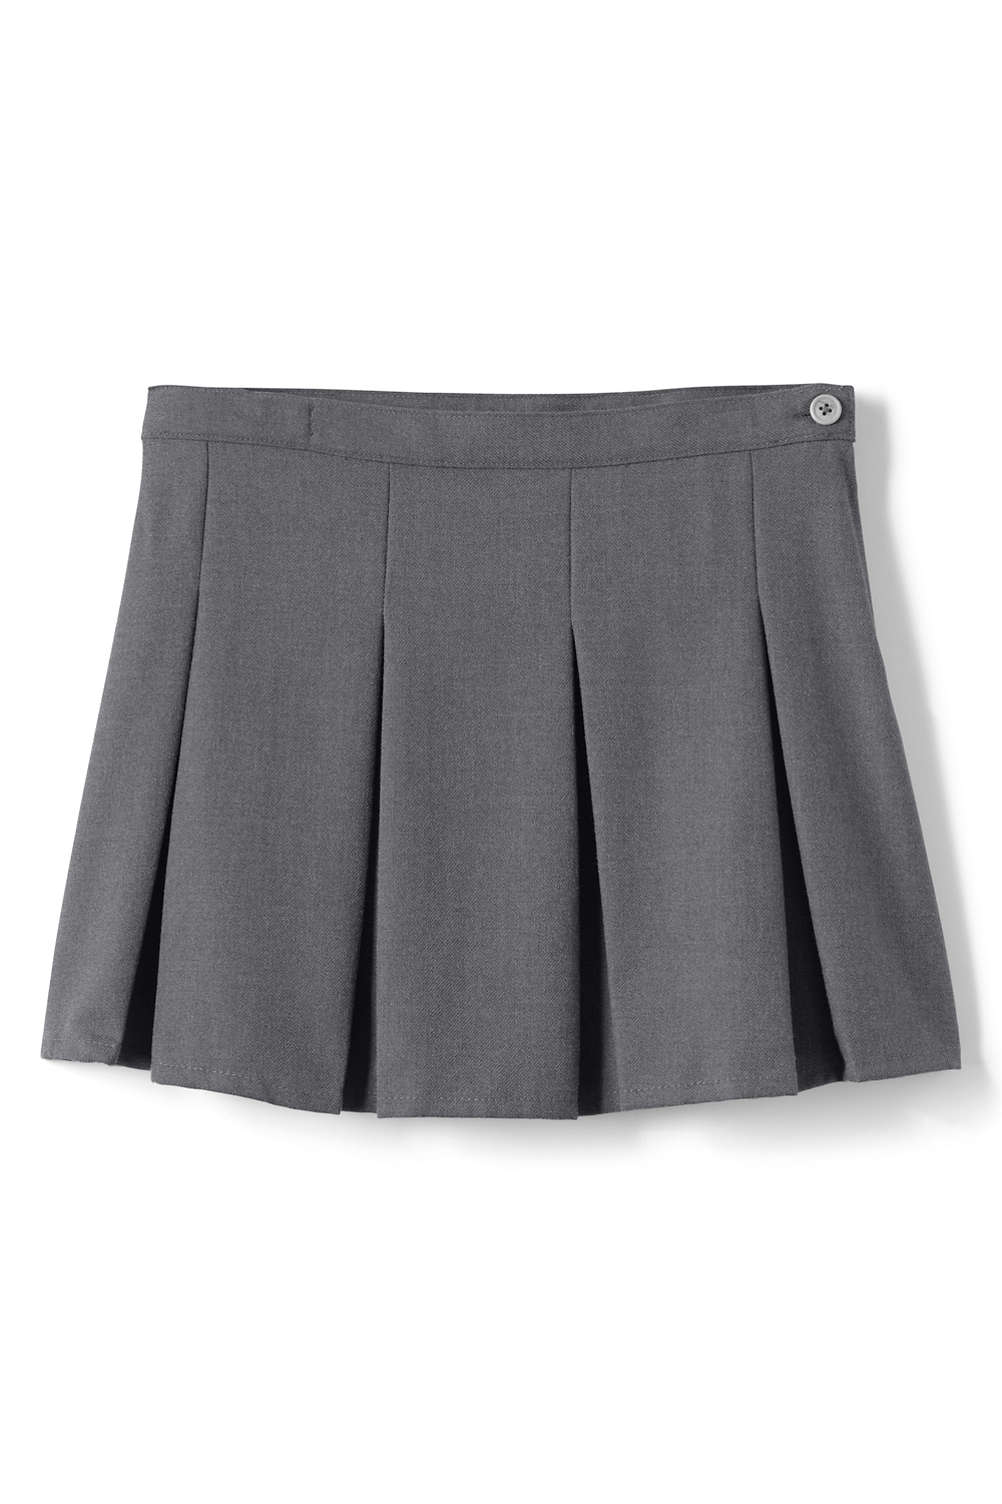 0d6ff571e43 Girls Solid Box Pleat Skirt Above Knee from Lands  End